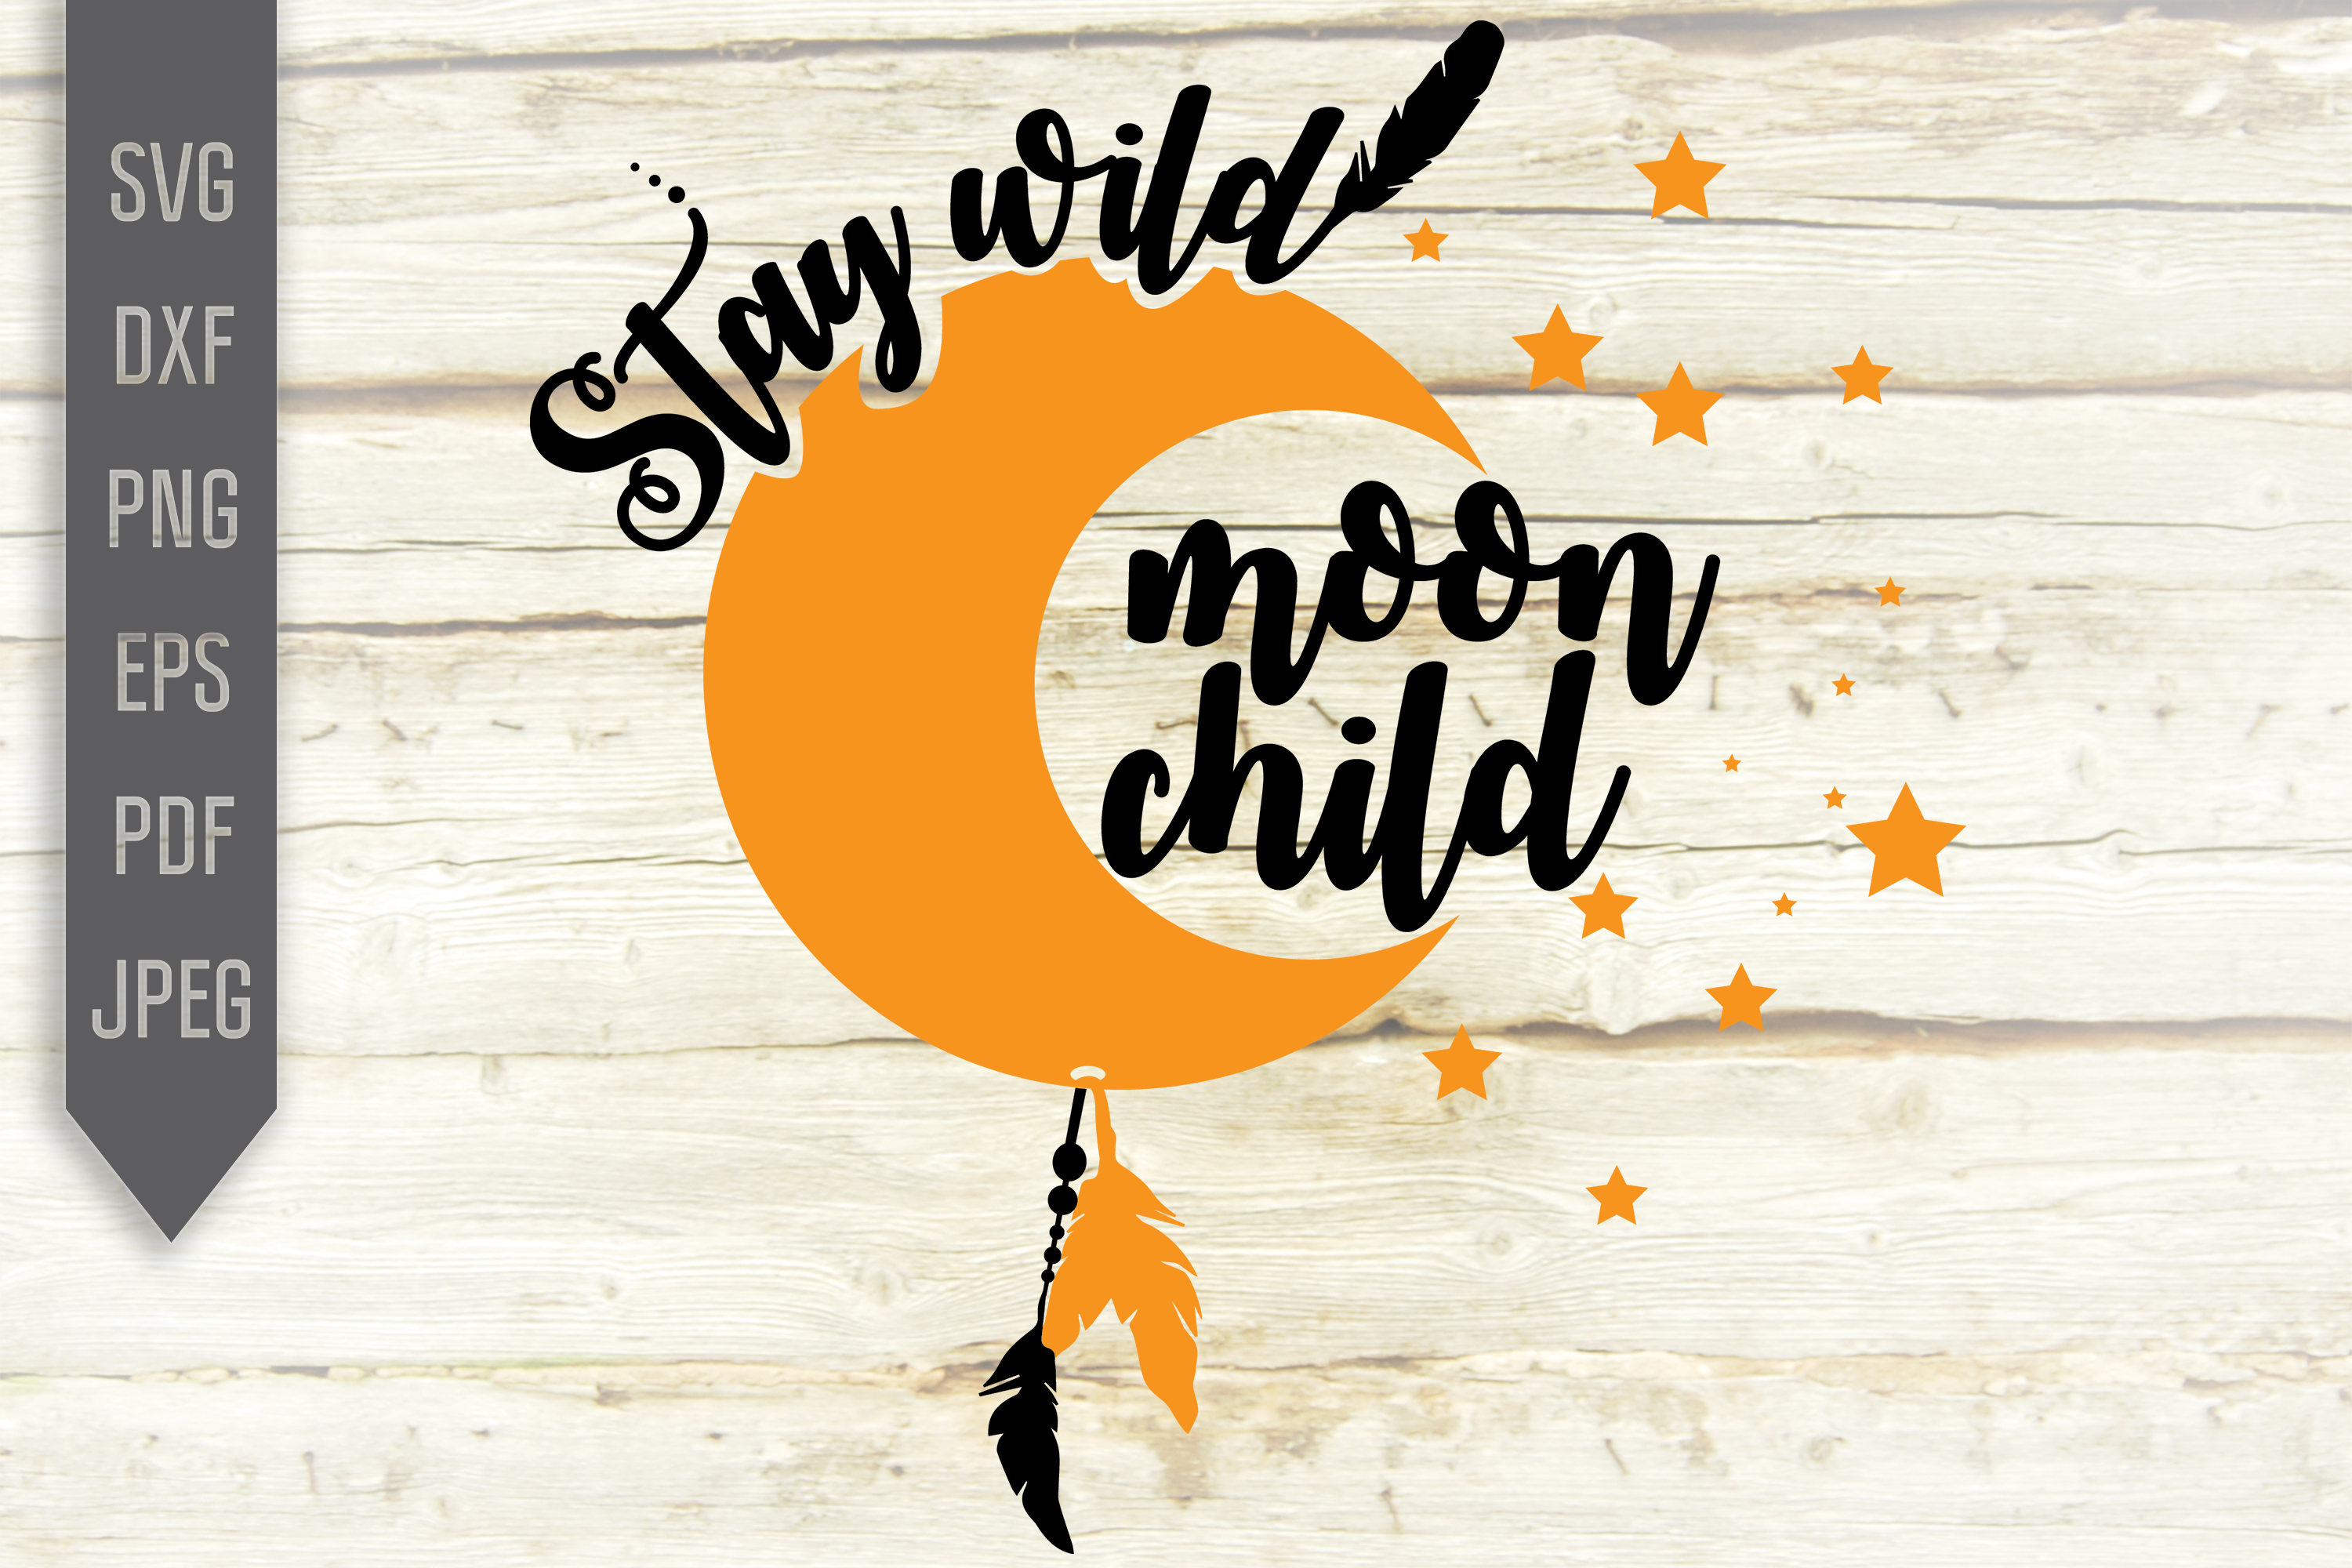 Download Free Stay Wild Moon Child Svg Baby Design Graphic By Svglaboratory for Cricut Explore, Silhouette and other cutting machines.